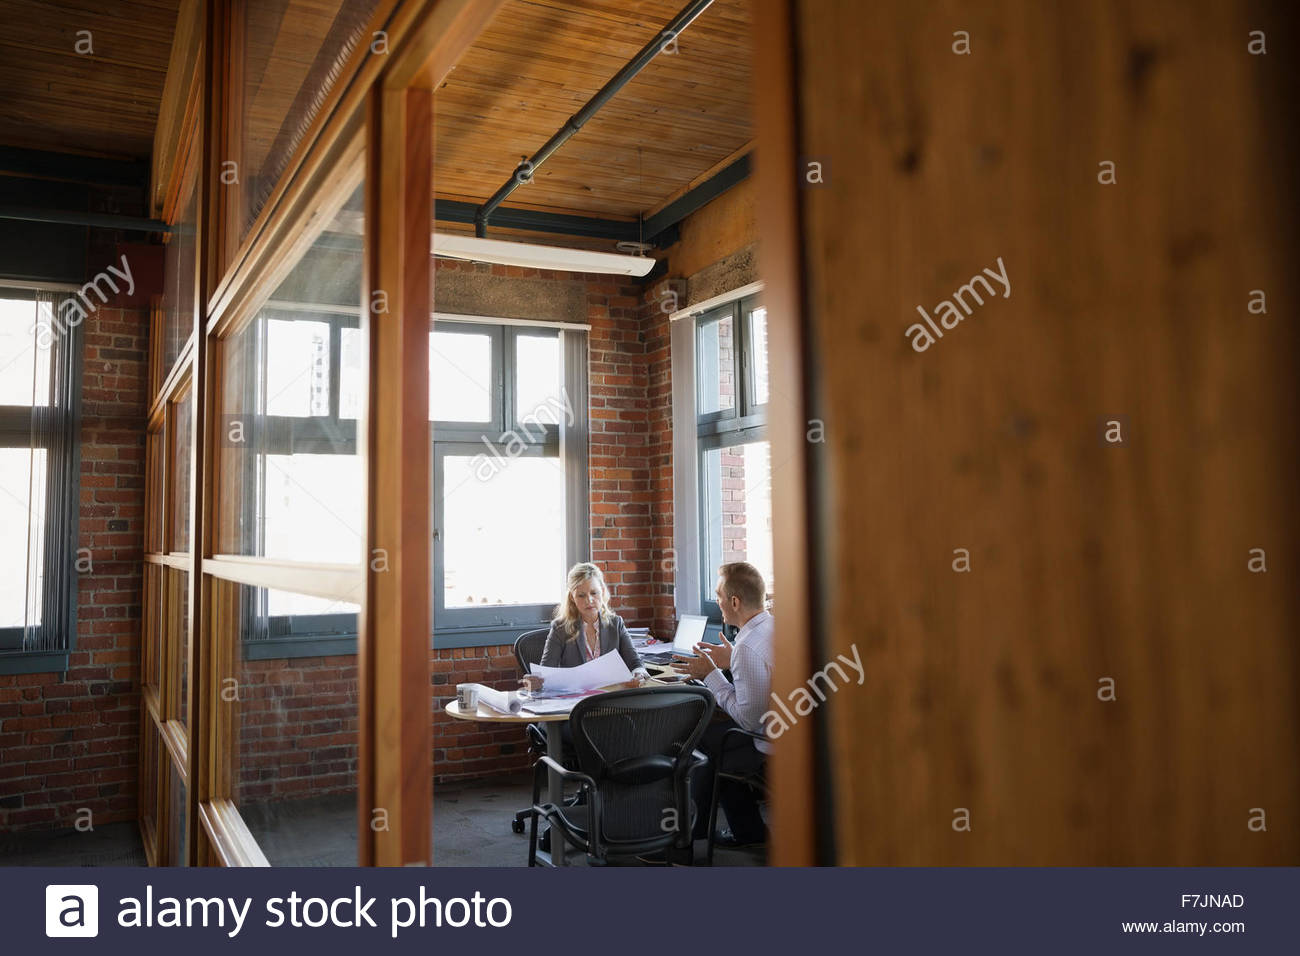 Business people discussing paperwork in office Photo Stock